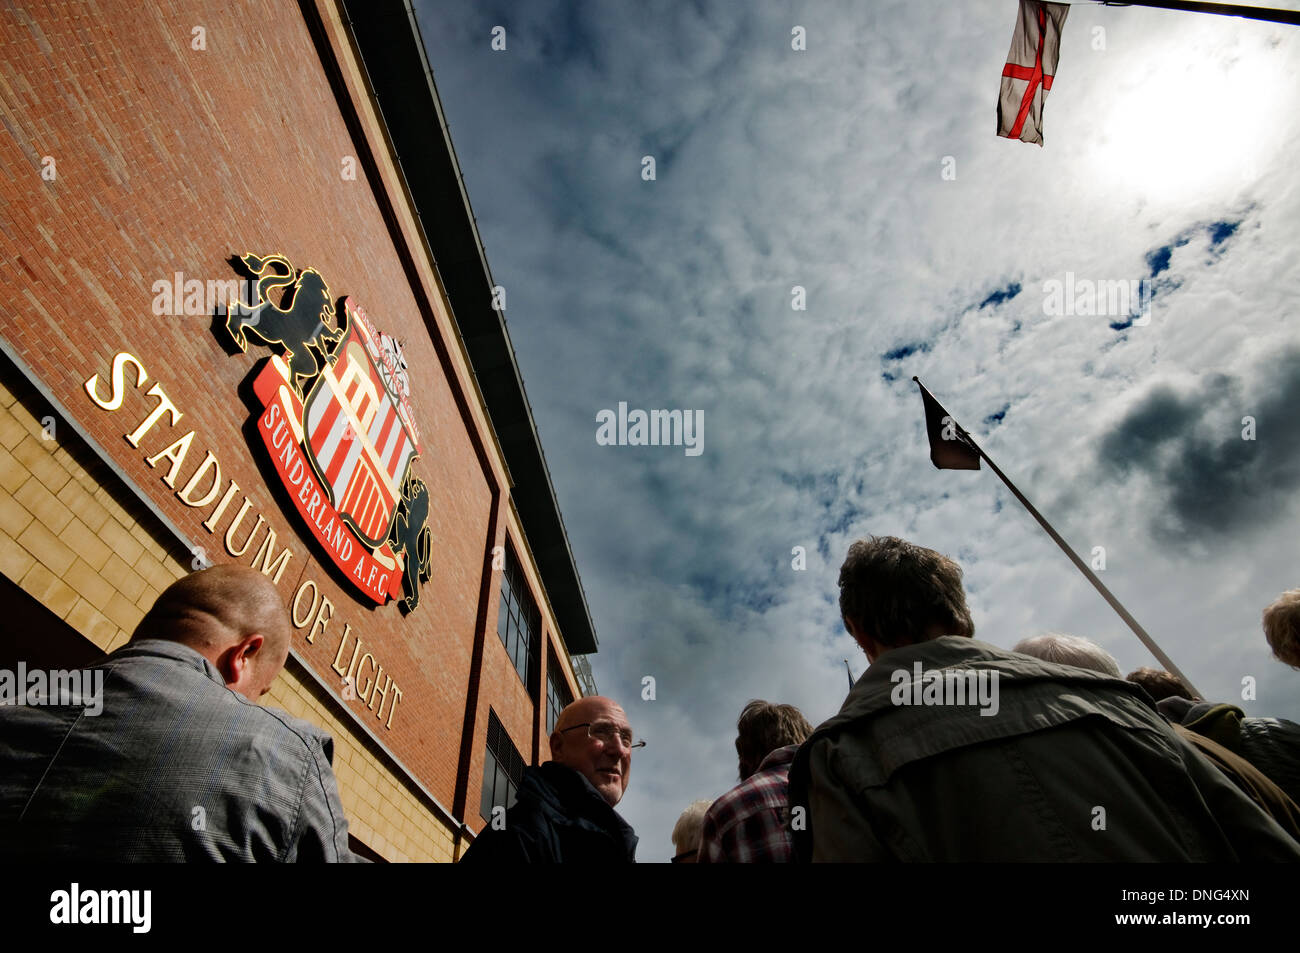 Fans wait outside of the Sunderland Stadium of Light before a home game in the Premier League against Manchester United - Stock Image